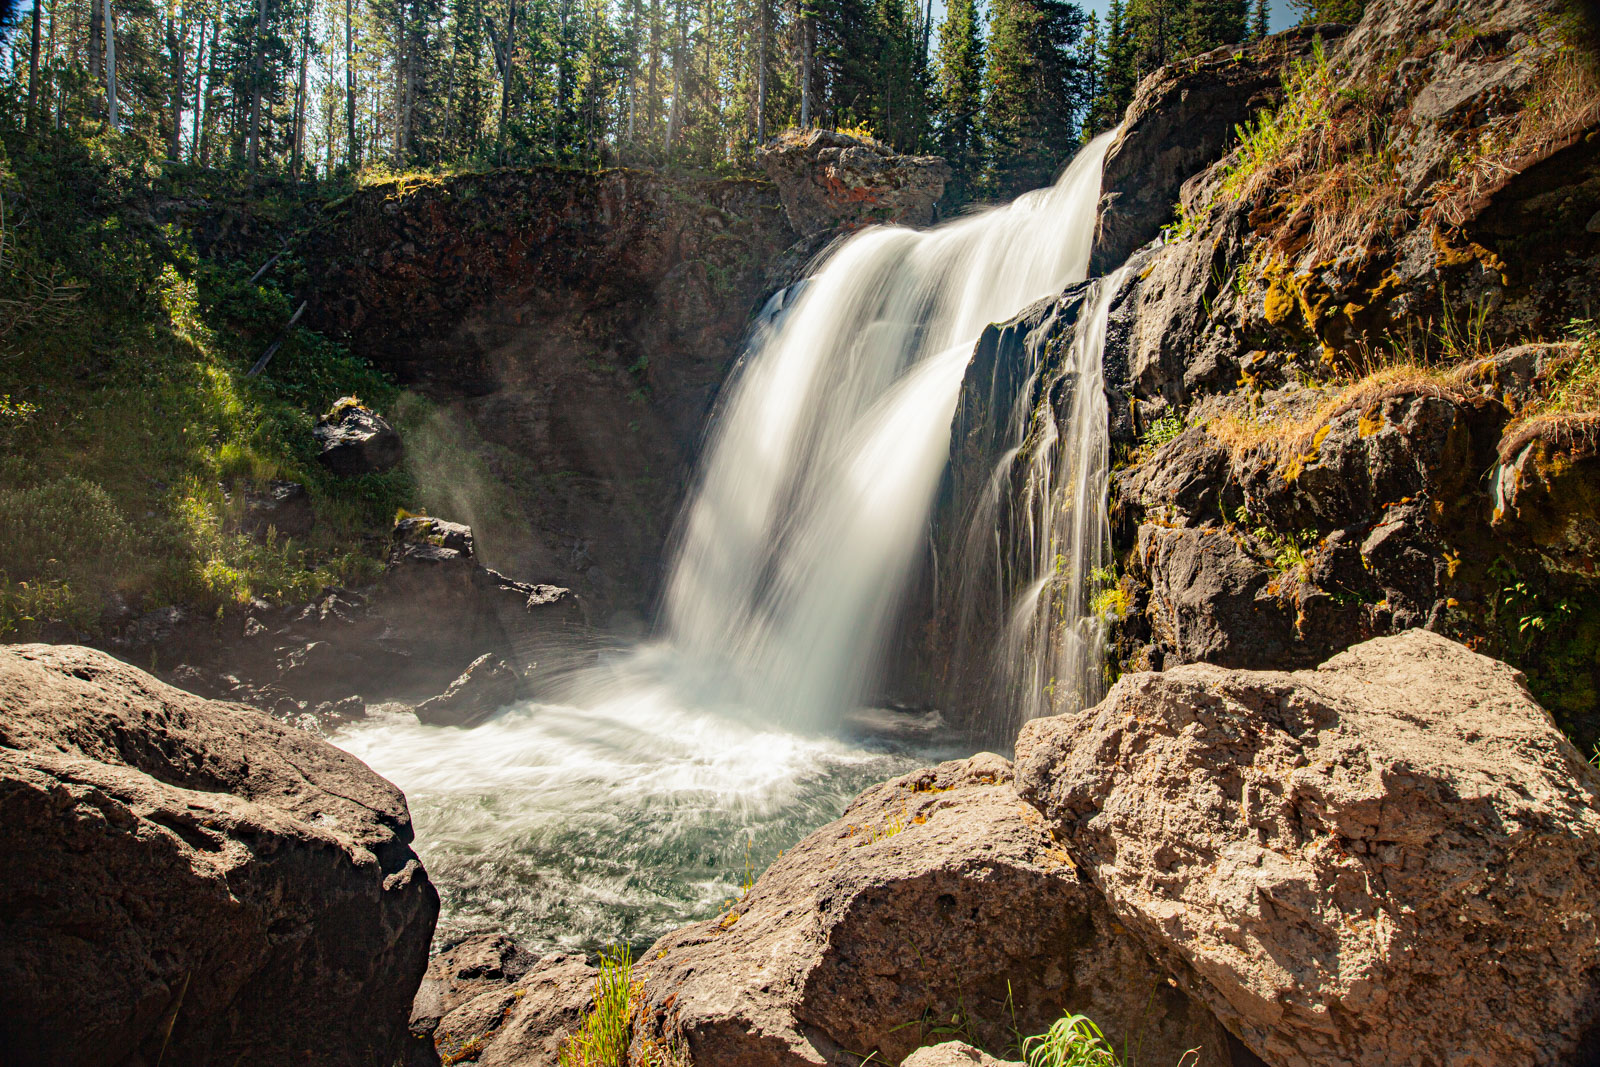 Moose Falls, Yellowstone National Park, Photo Credit: Vezzani Photography